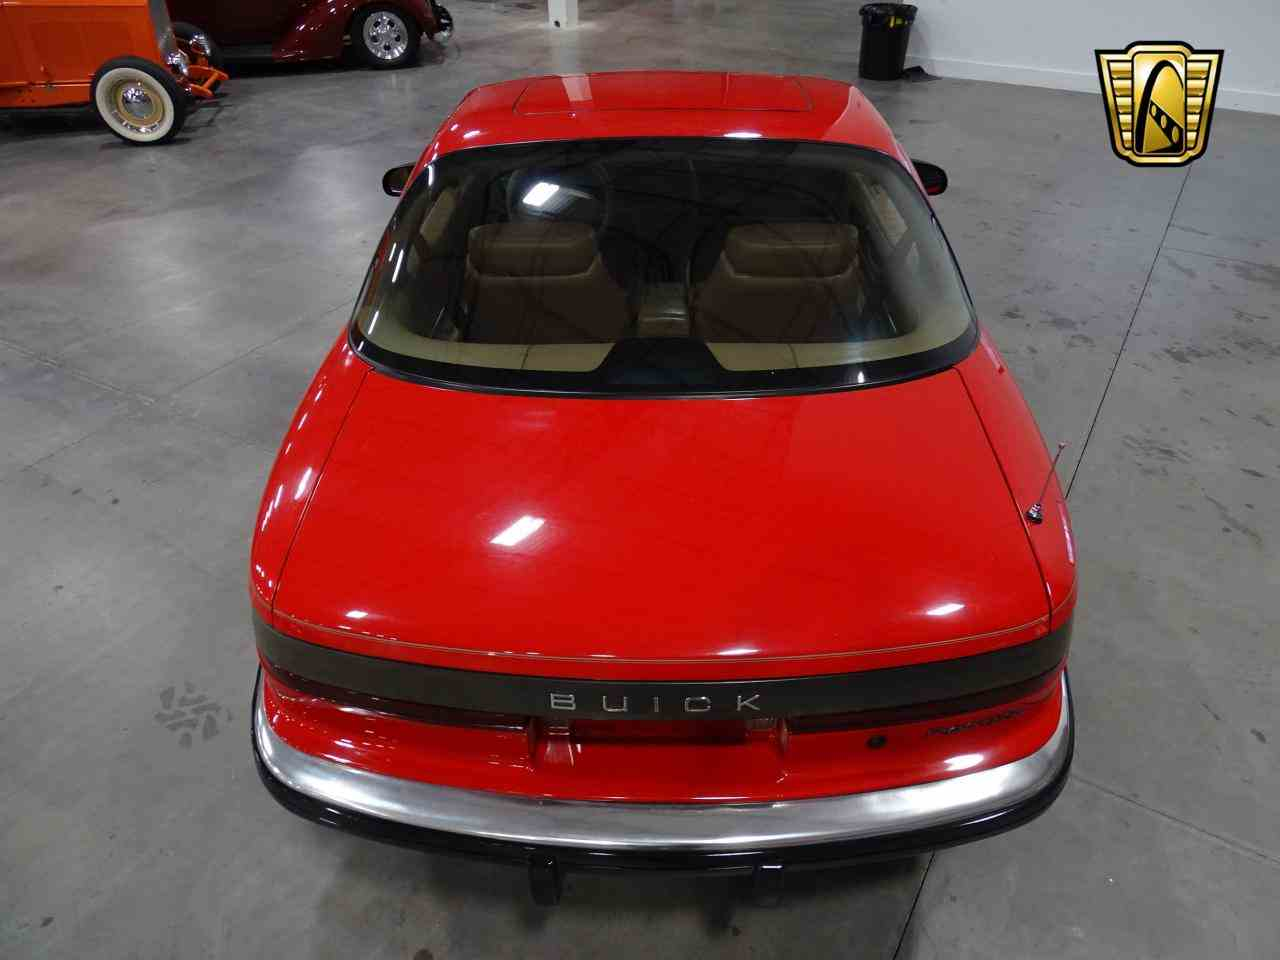 Large Picture of '90 Reatta - $8,995.00 Offered by Gateway Classic Cars - Dallas - KOB1